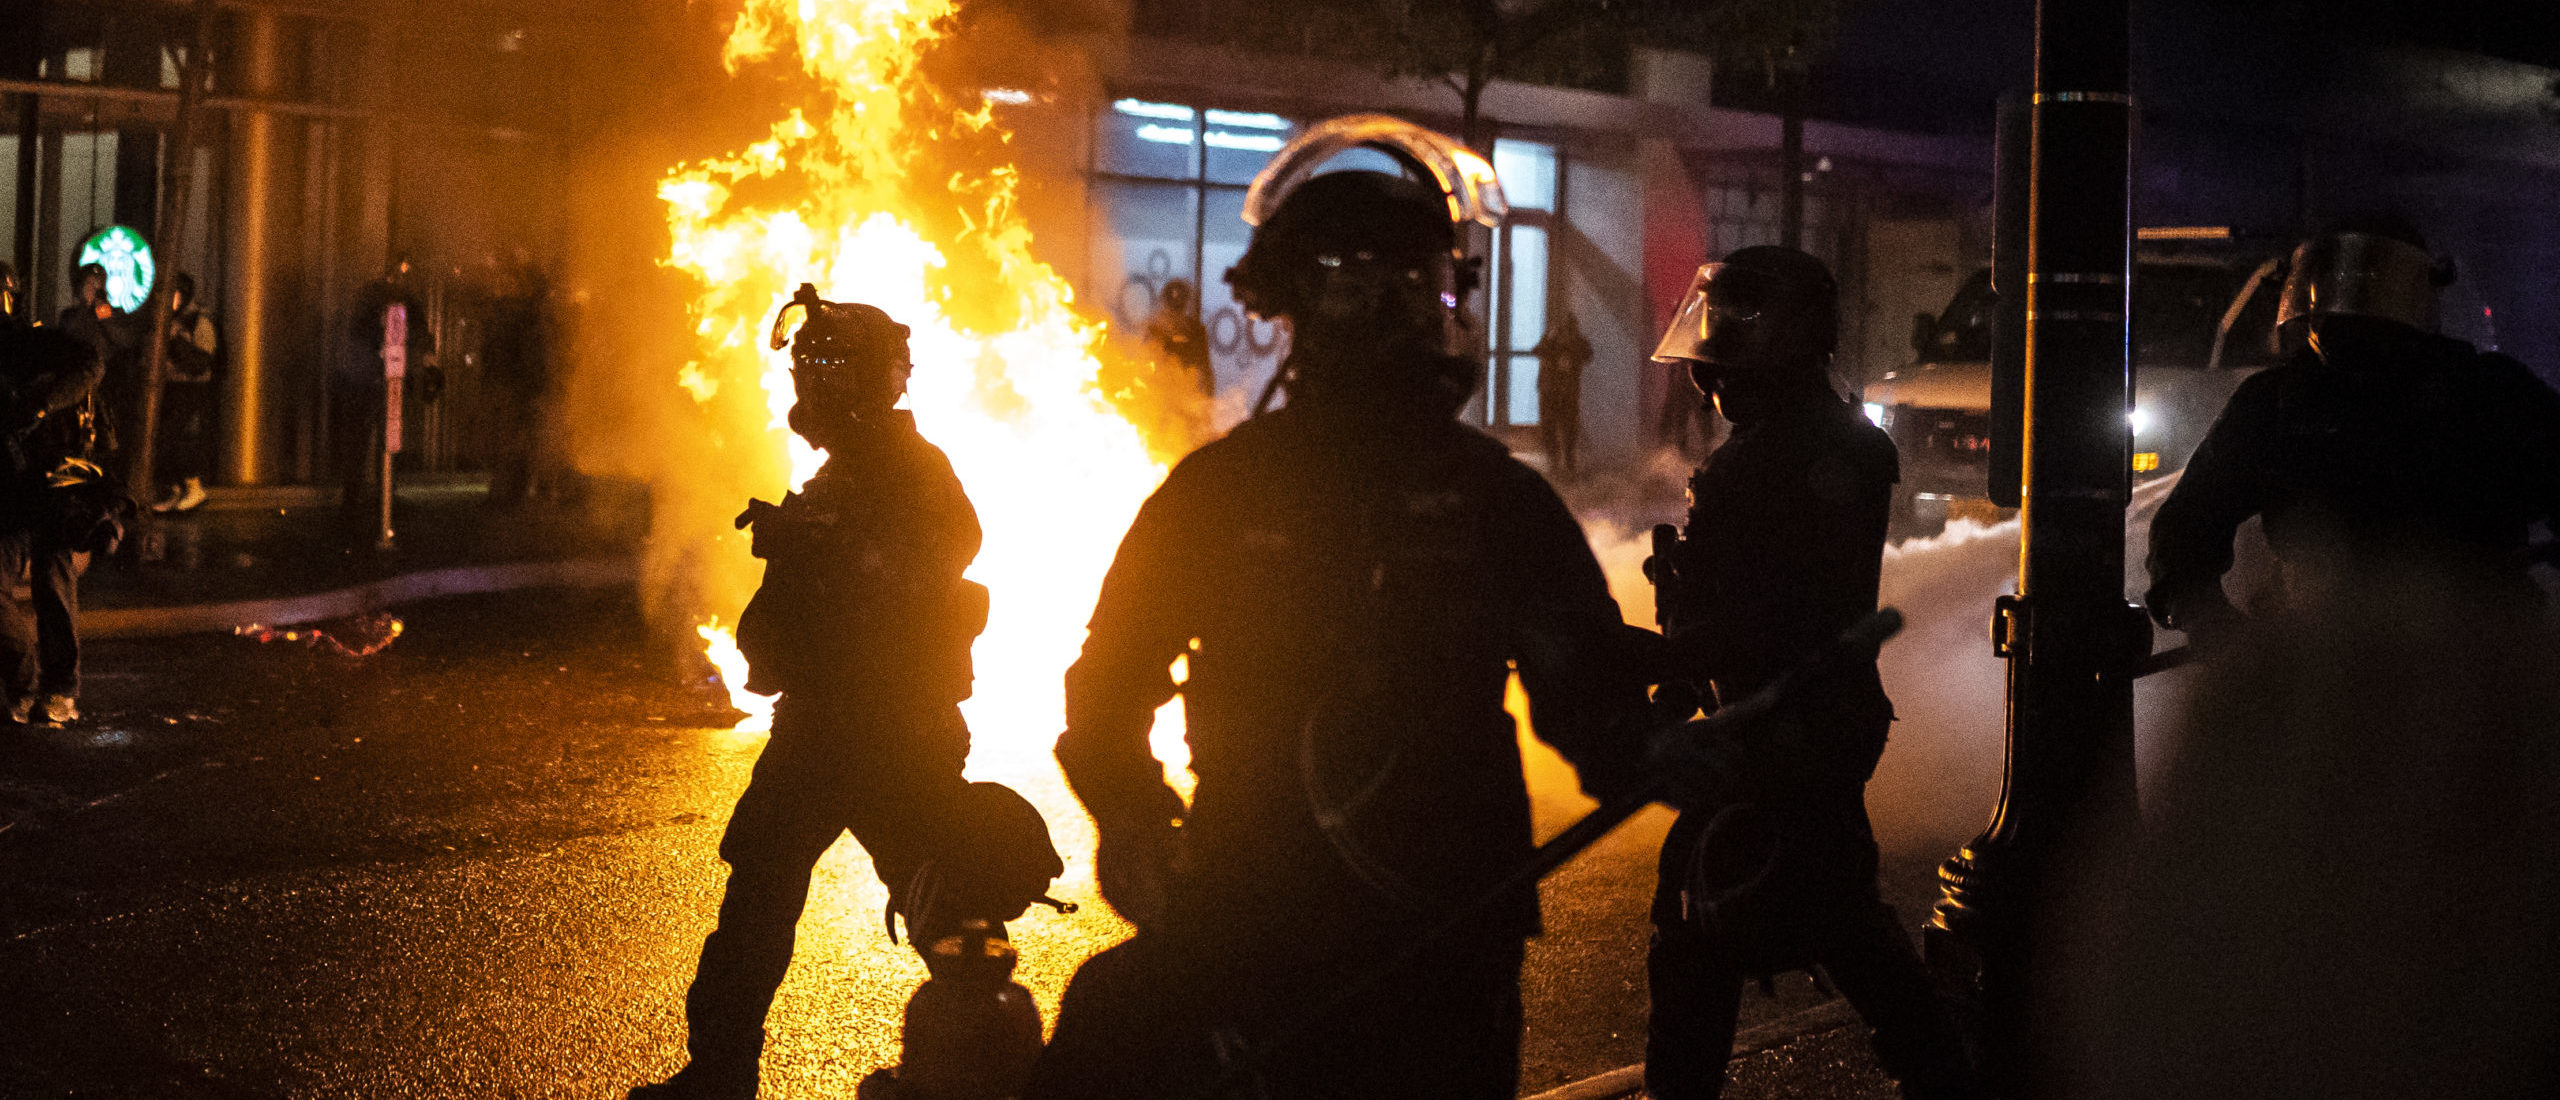 PORTLAND, OR - SEPTEMBER 23: Portland police walk past a fire started by a Molotov cocktail thrown at police on September 23, 2020 in Portland, United States. Violent protests erupted across the nation Wednesday following the results of a grand jury investigation into the police shooting death of Breonna Taylor. (Photo by Nathan Howard/Getty Images)